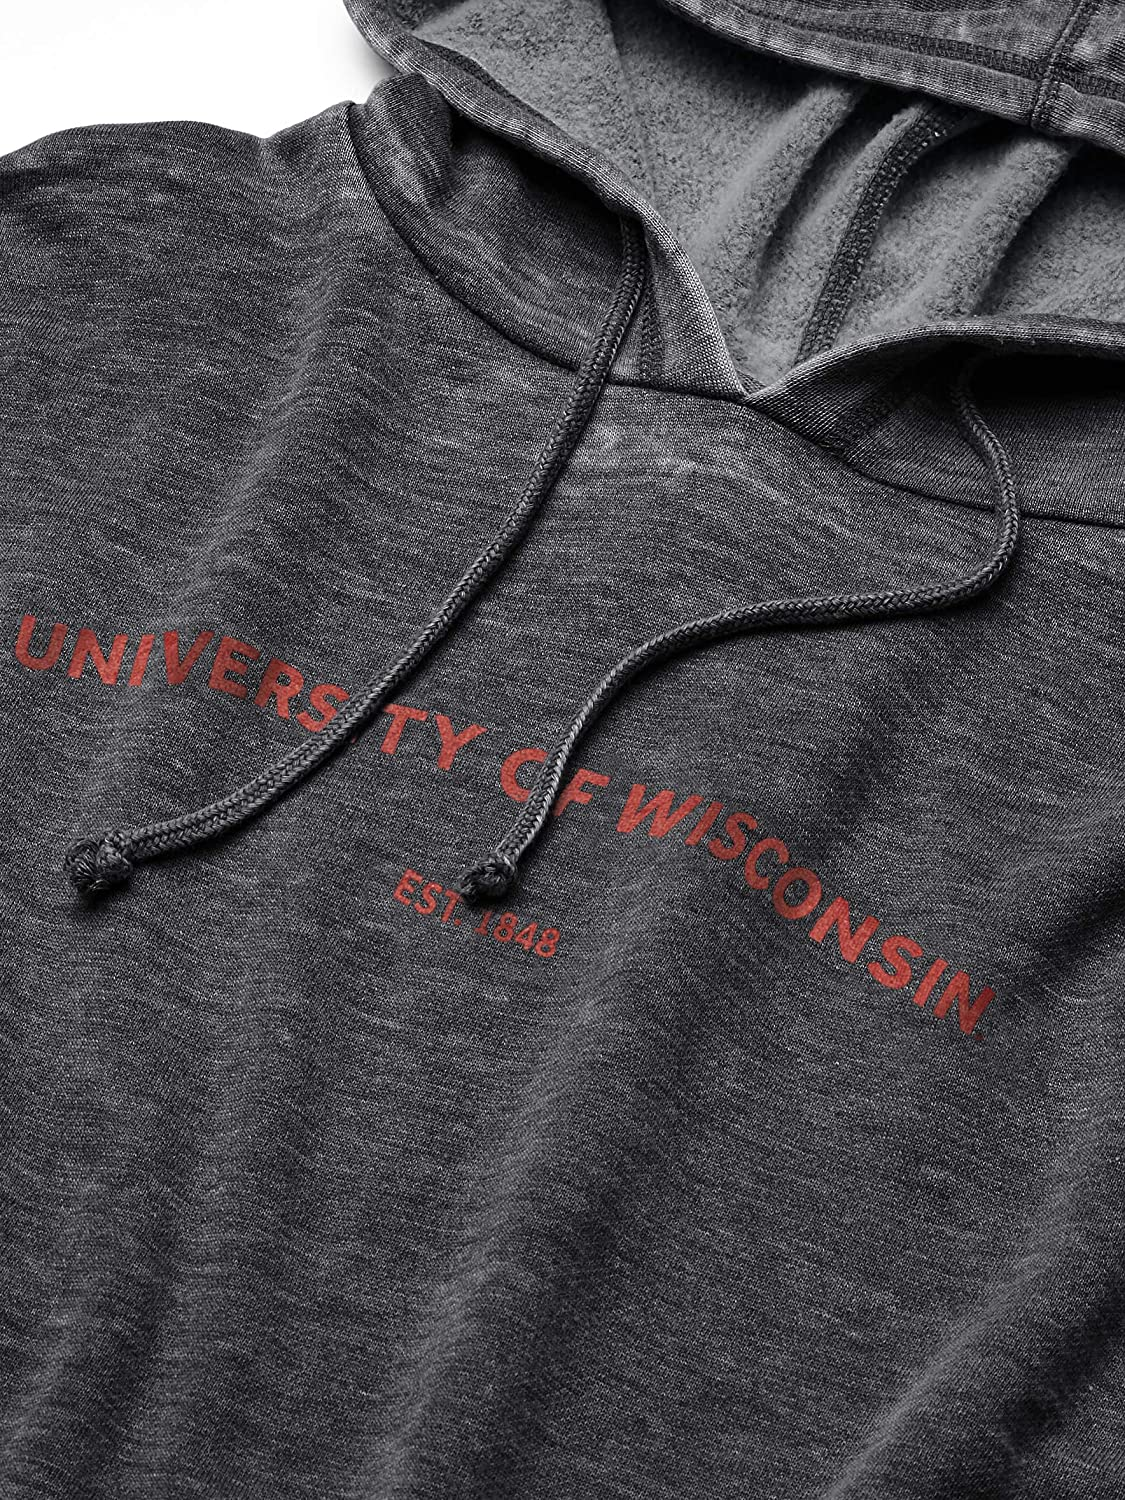 chicka-d Womens Campus Hoodie